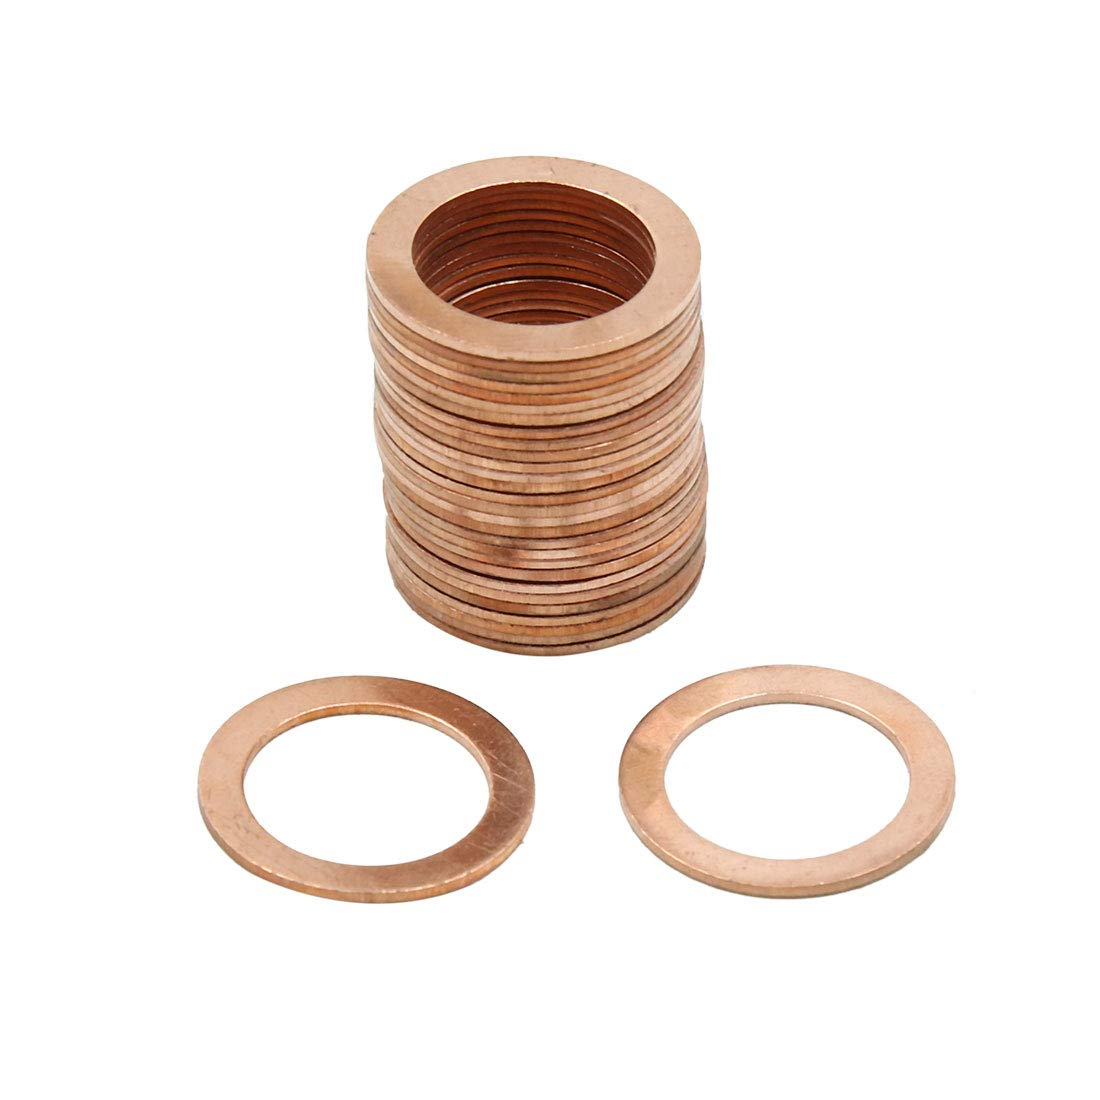 X AUTOHAUX 18mm Inner Dia Copper Crush Washers Car Flat Sealing Plate Gaskets Rings 30pcs